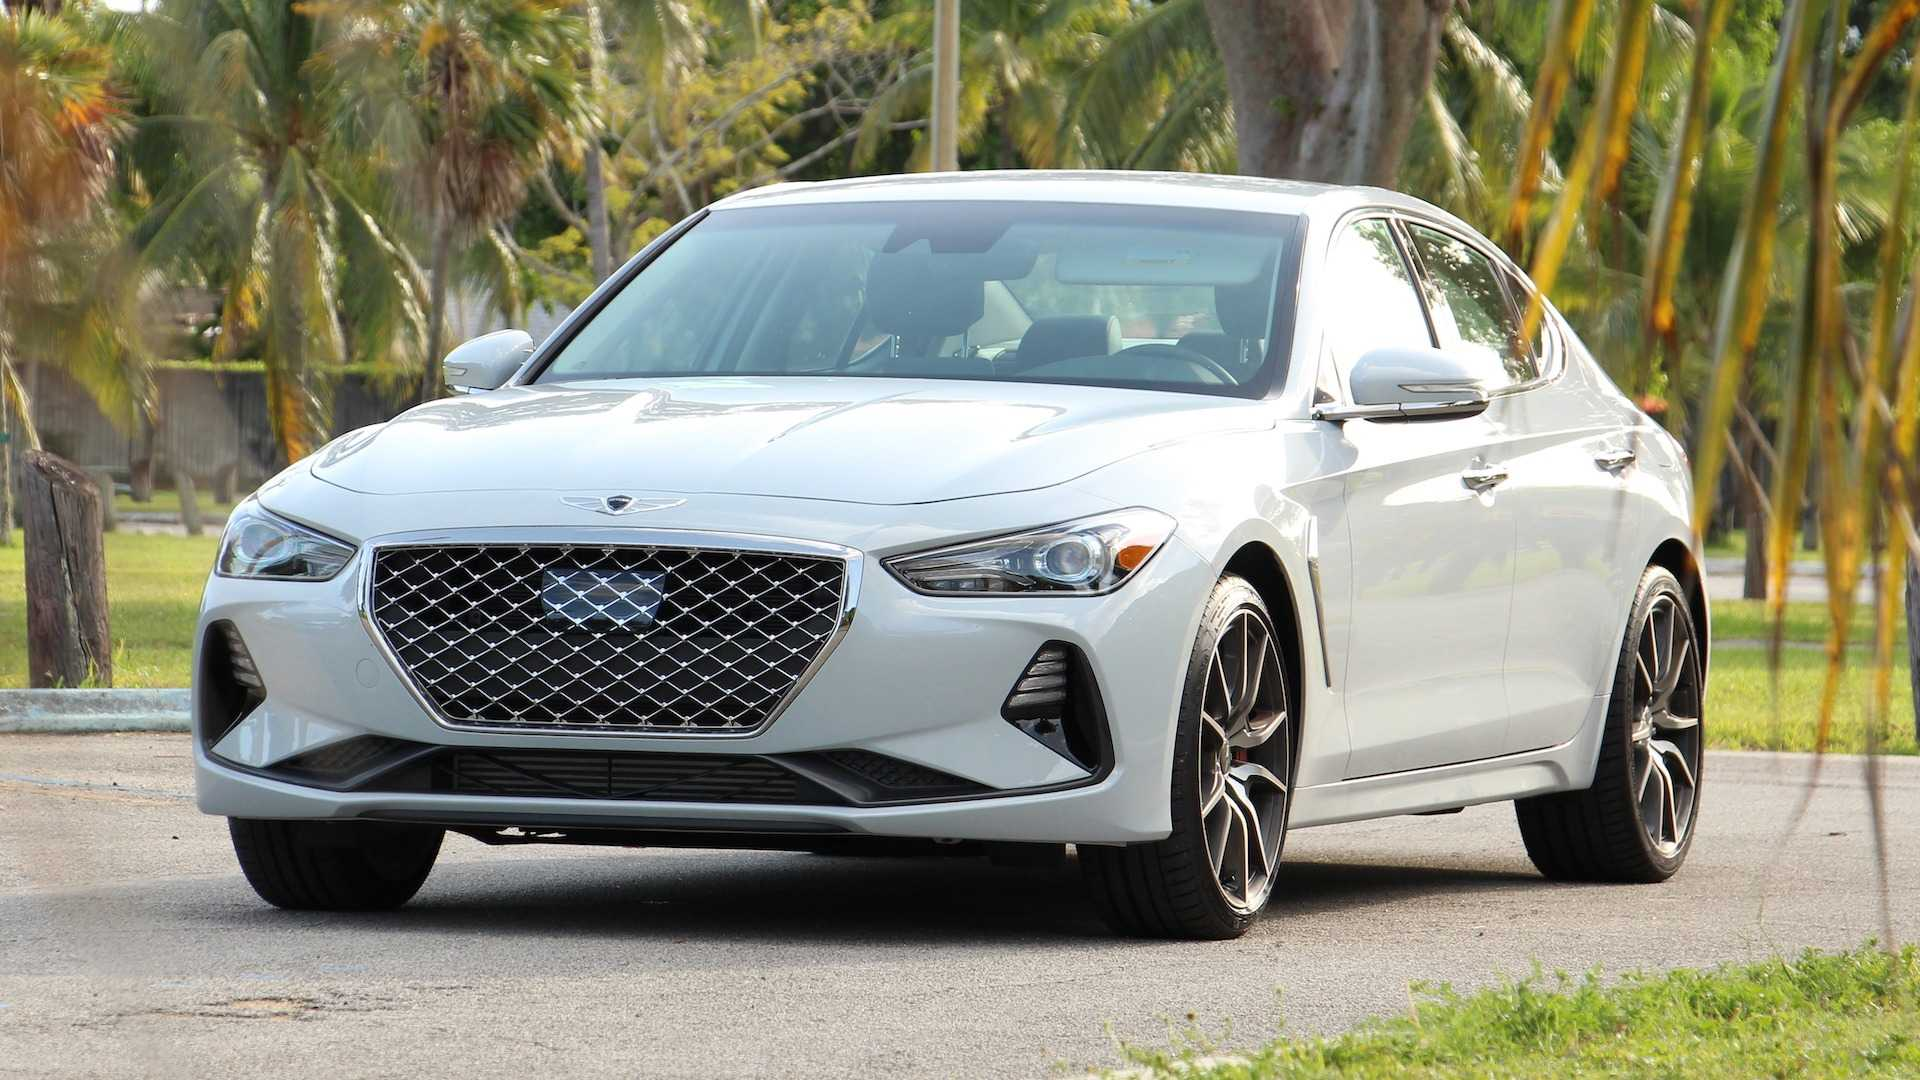 Genesis G70 Getting More Power With New 2 5 Liter Turbo Engine